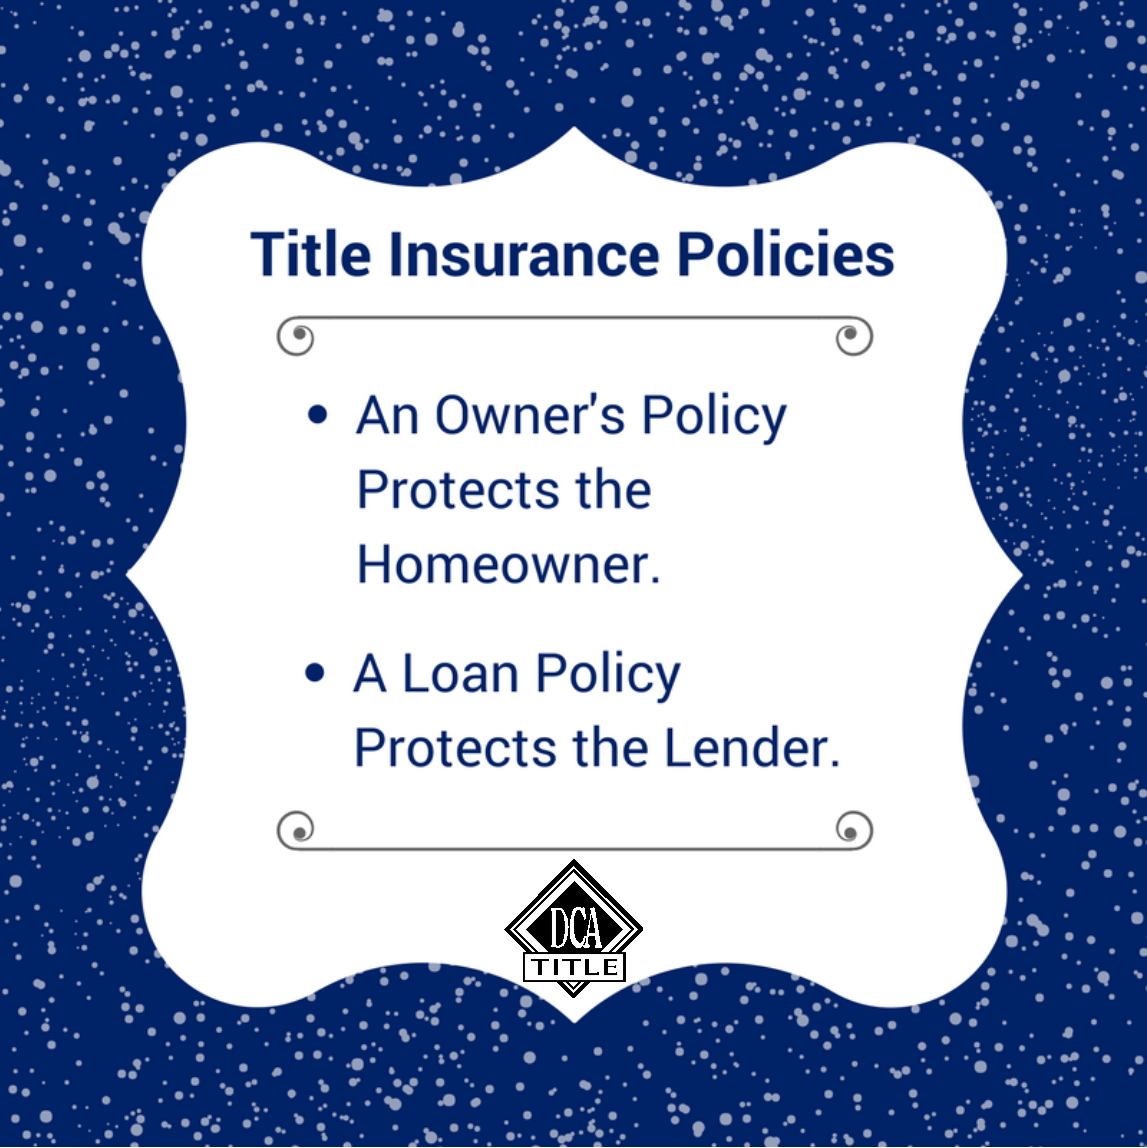 Make Sure To Know The Difference Between An Owners Policy And Loan